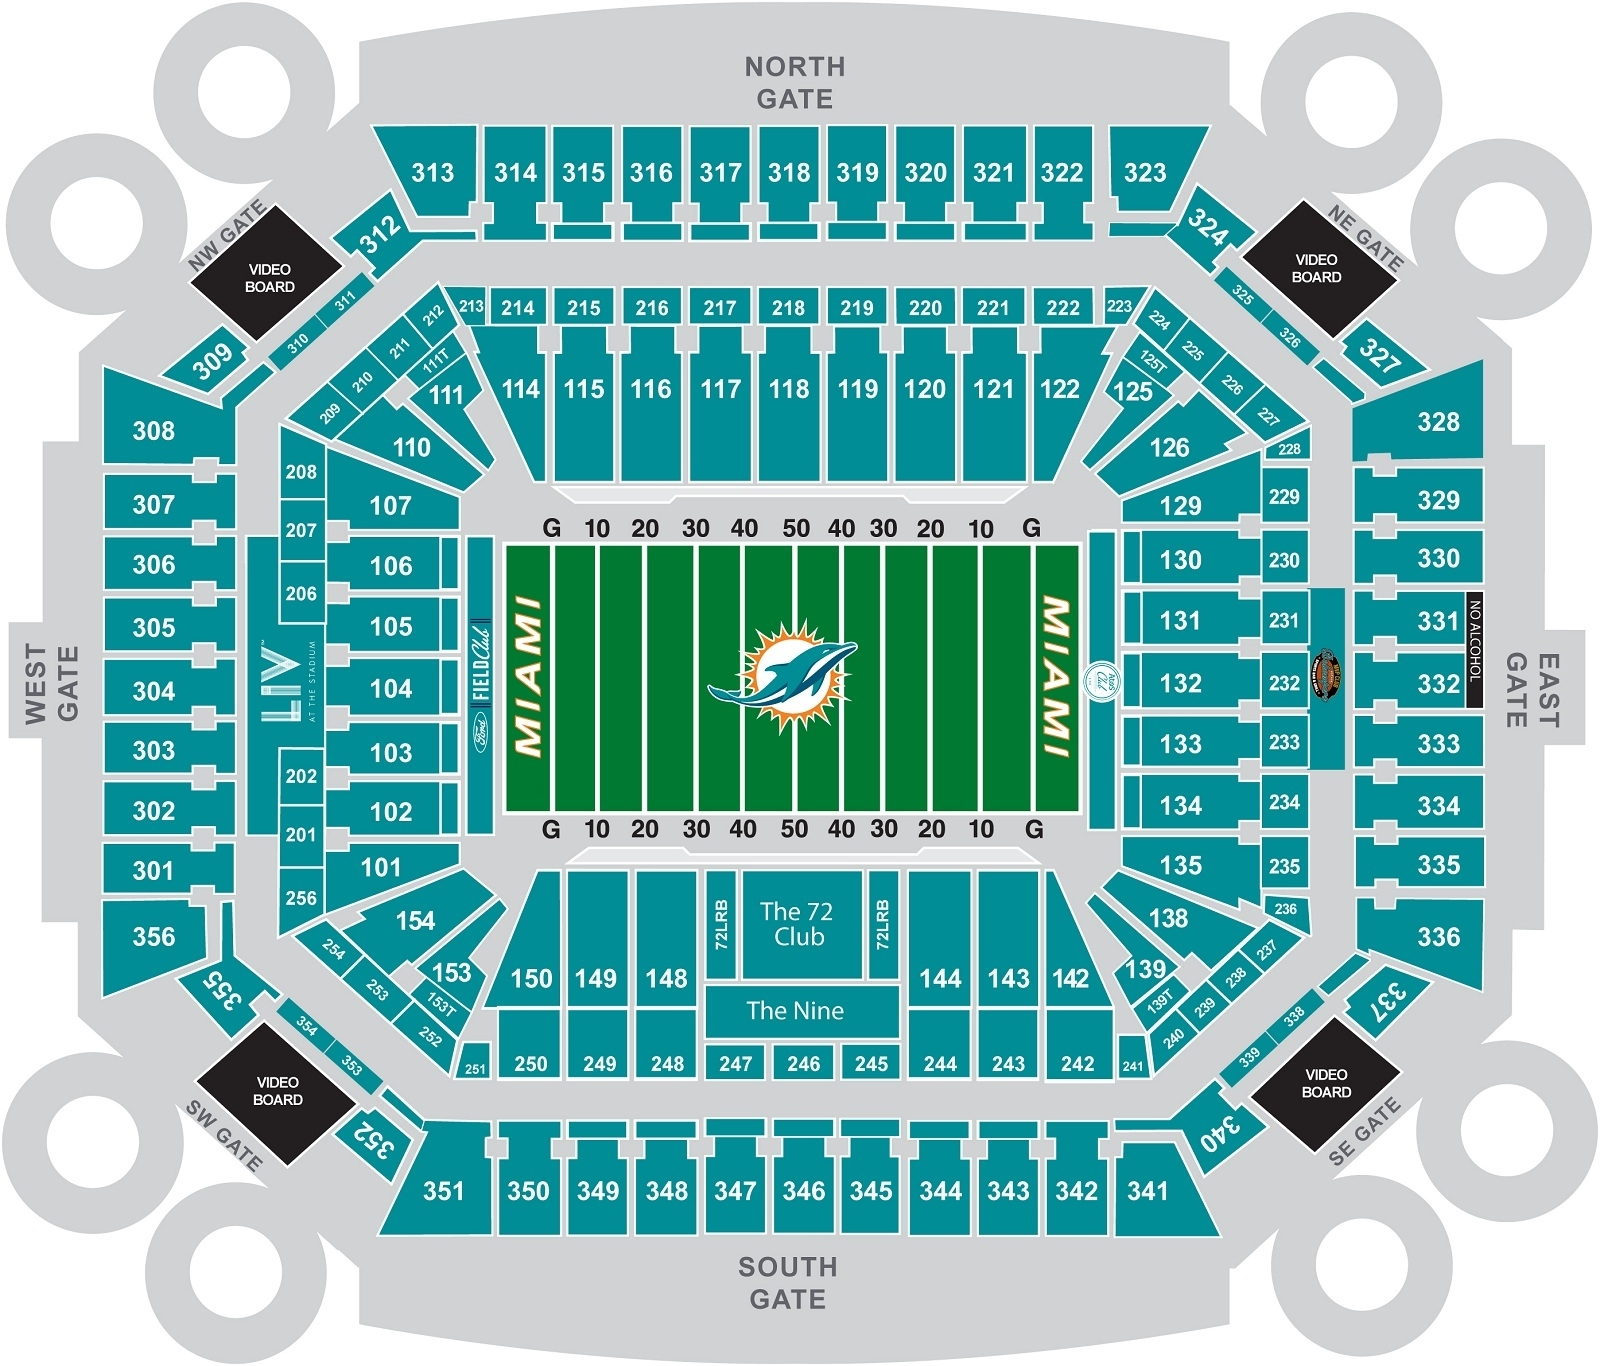 2020 Super Bowl Seating Chart | February 2, 2020 | Fan throughout Seating Capacity At Super Bowl